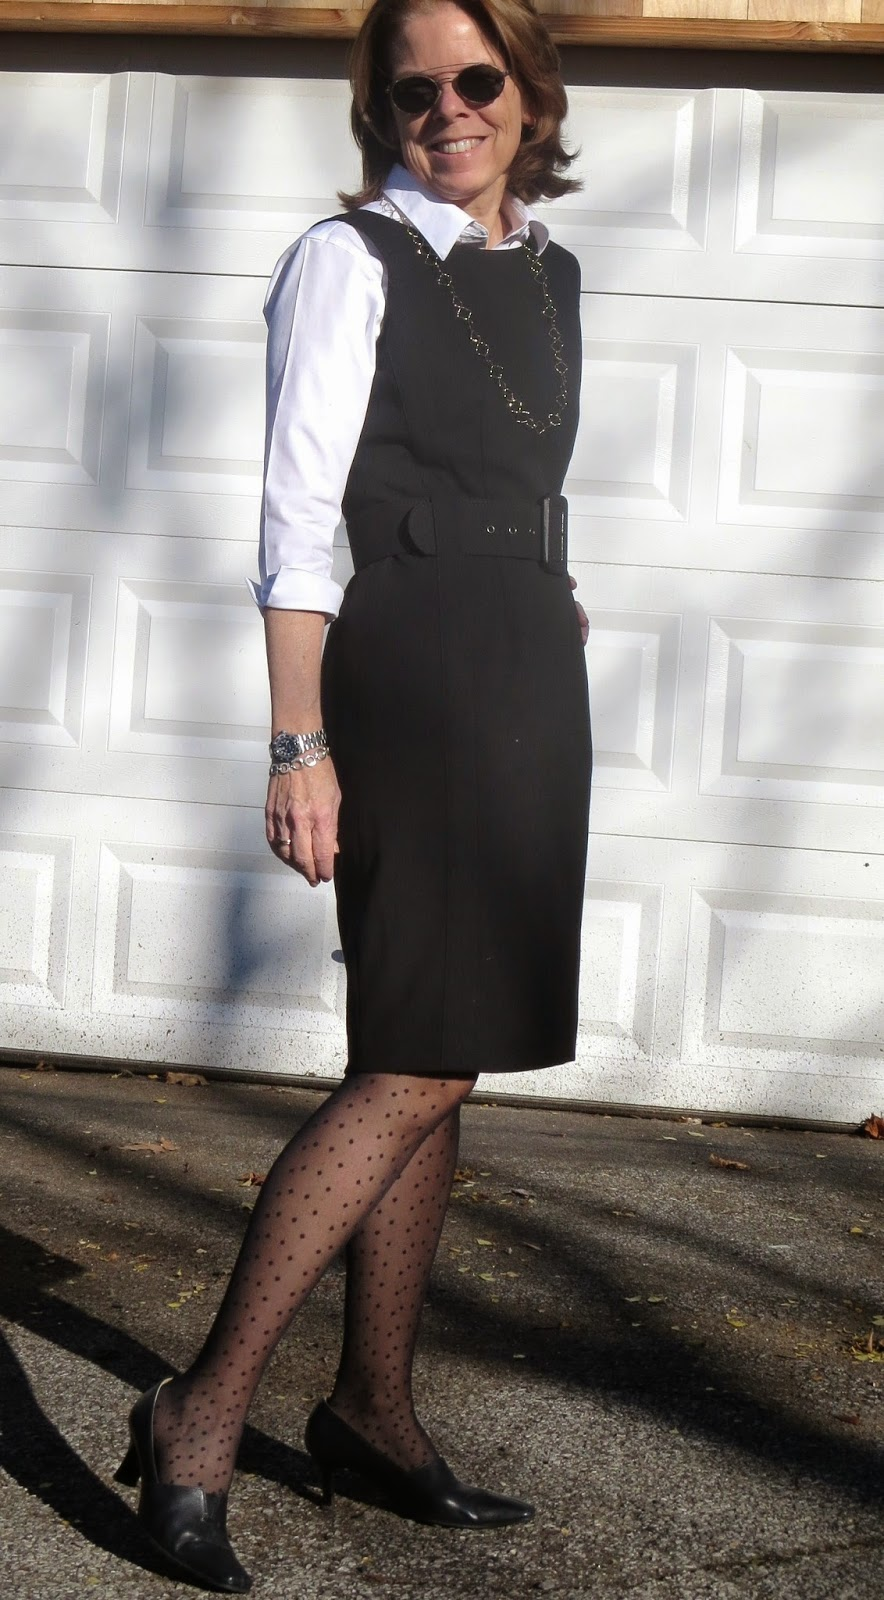 Professional outfit for women over 50